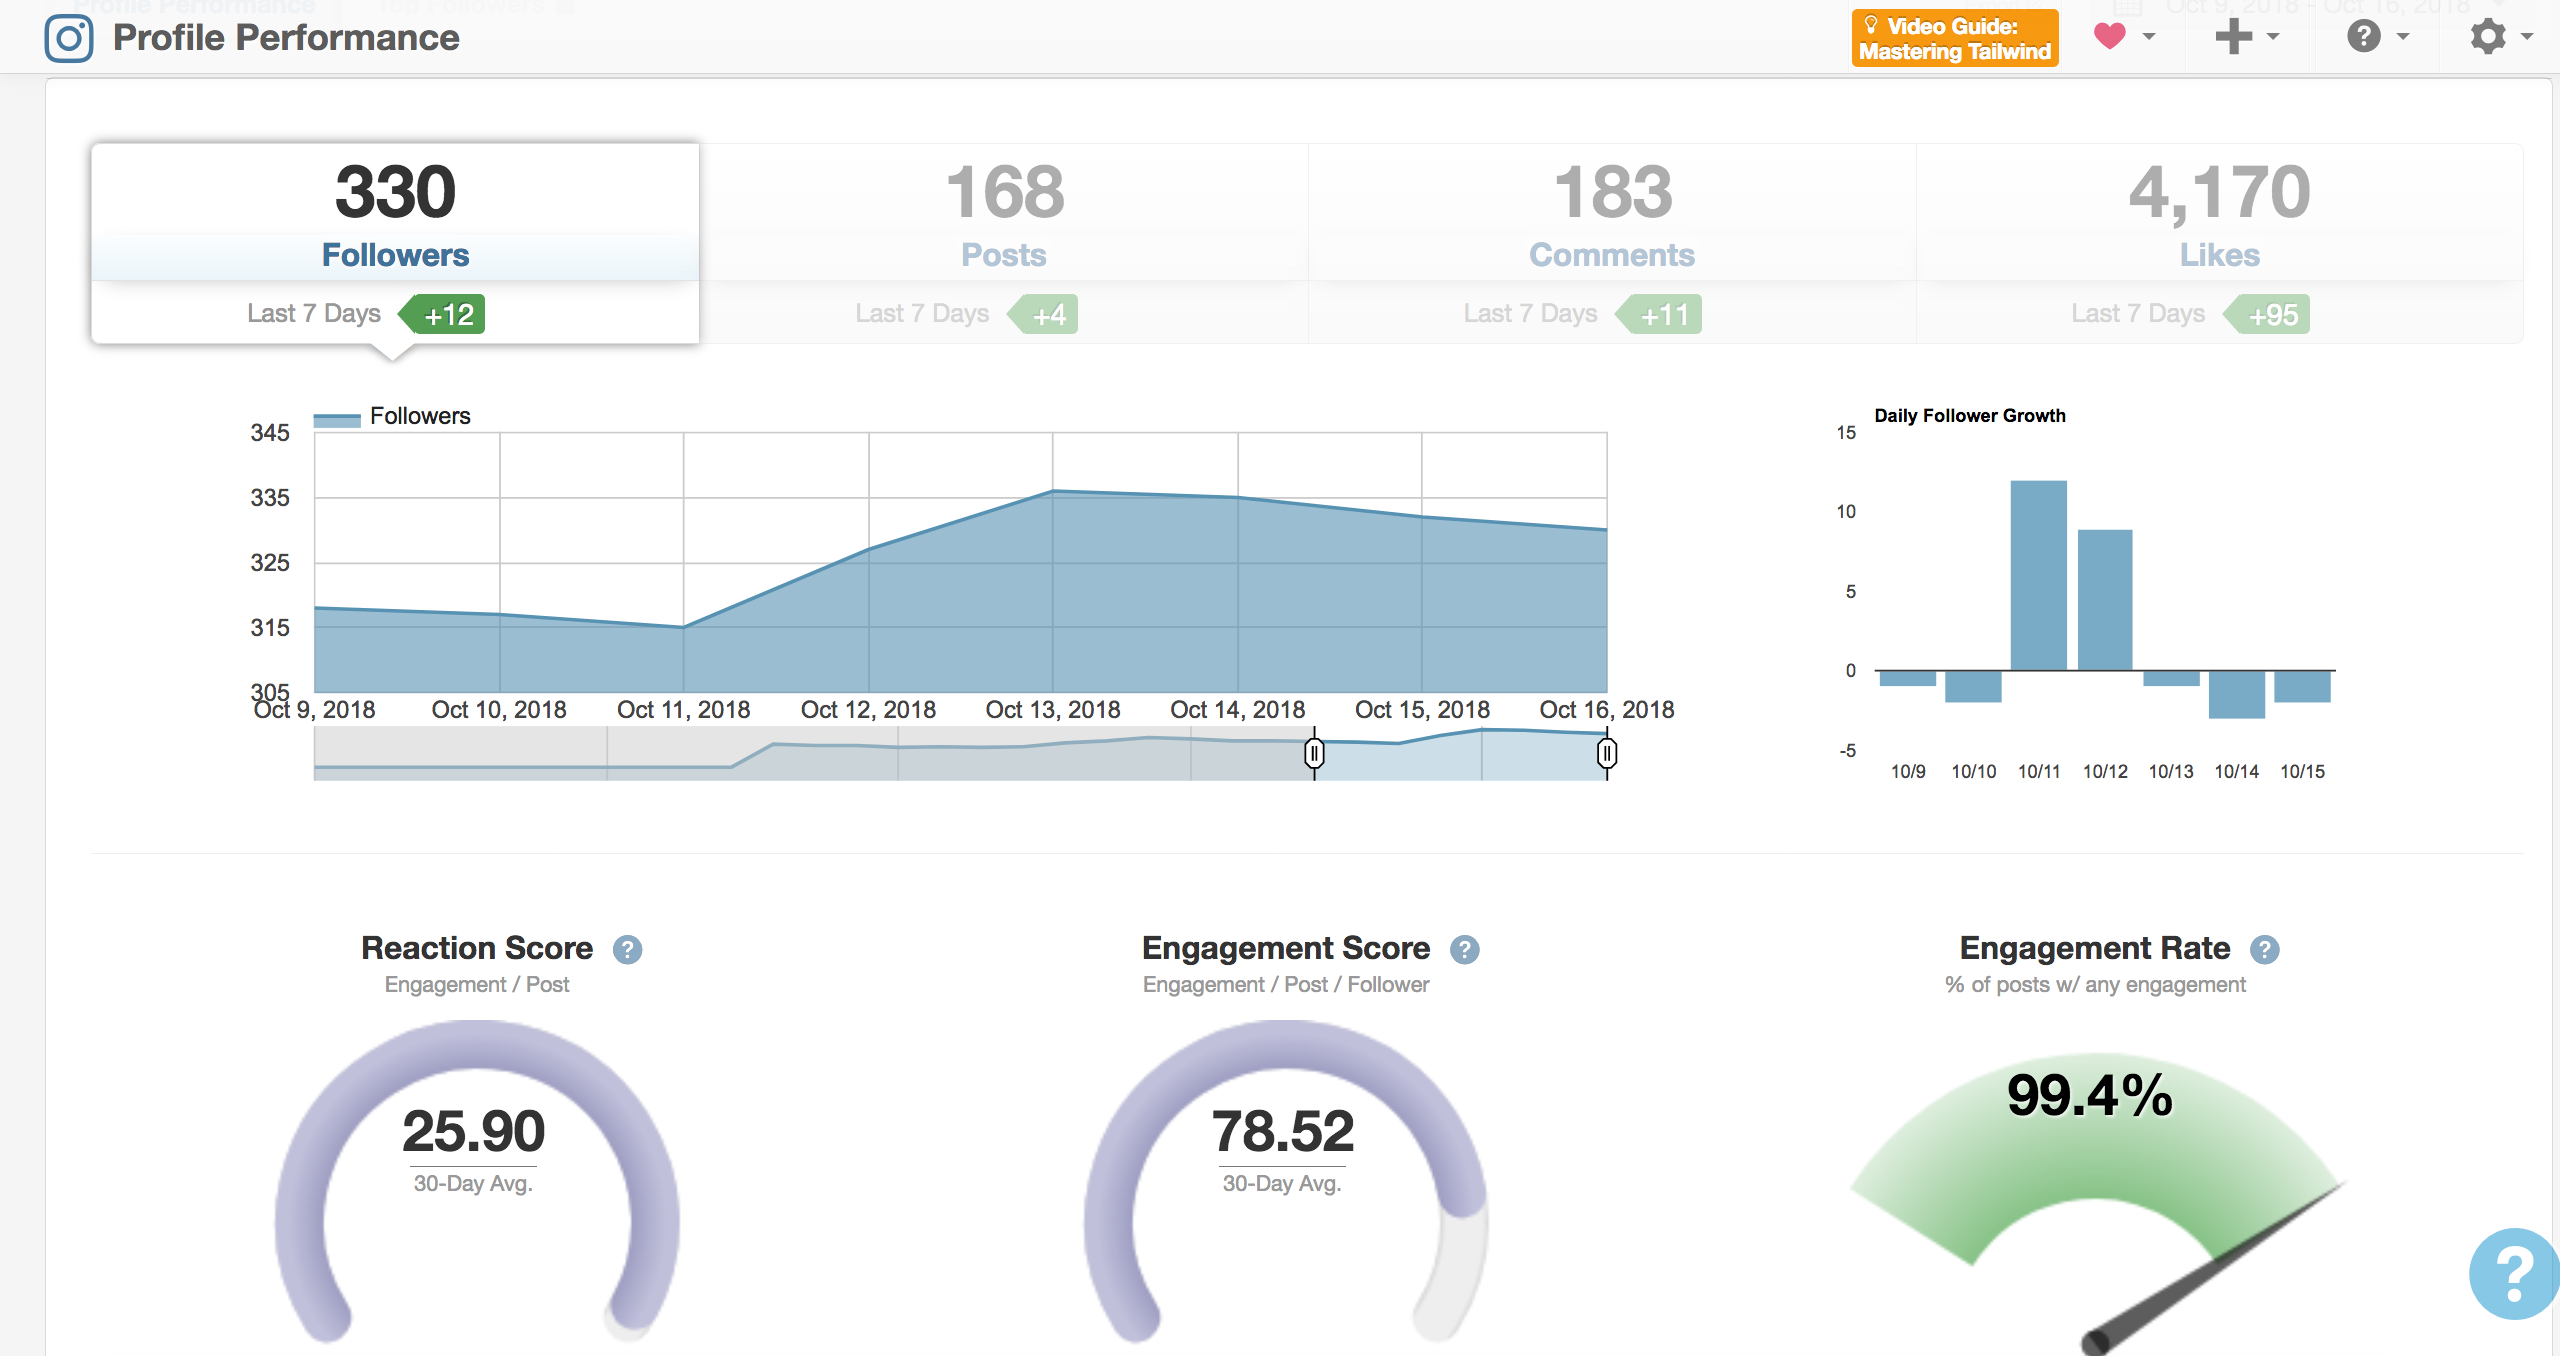 Under profile performance, you can see metrics including follower growth and engagement rate.